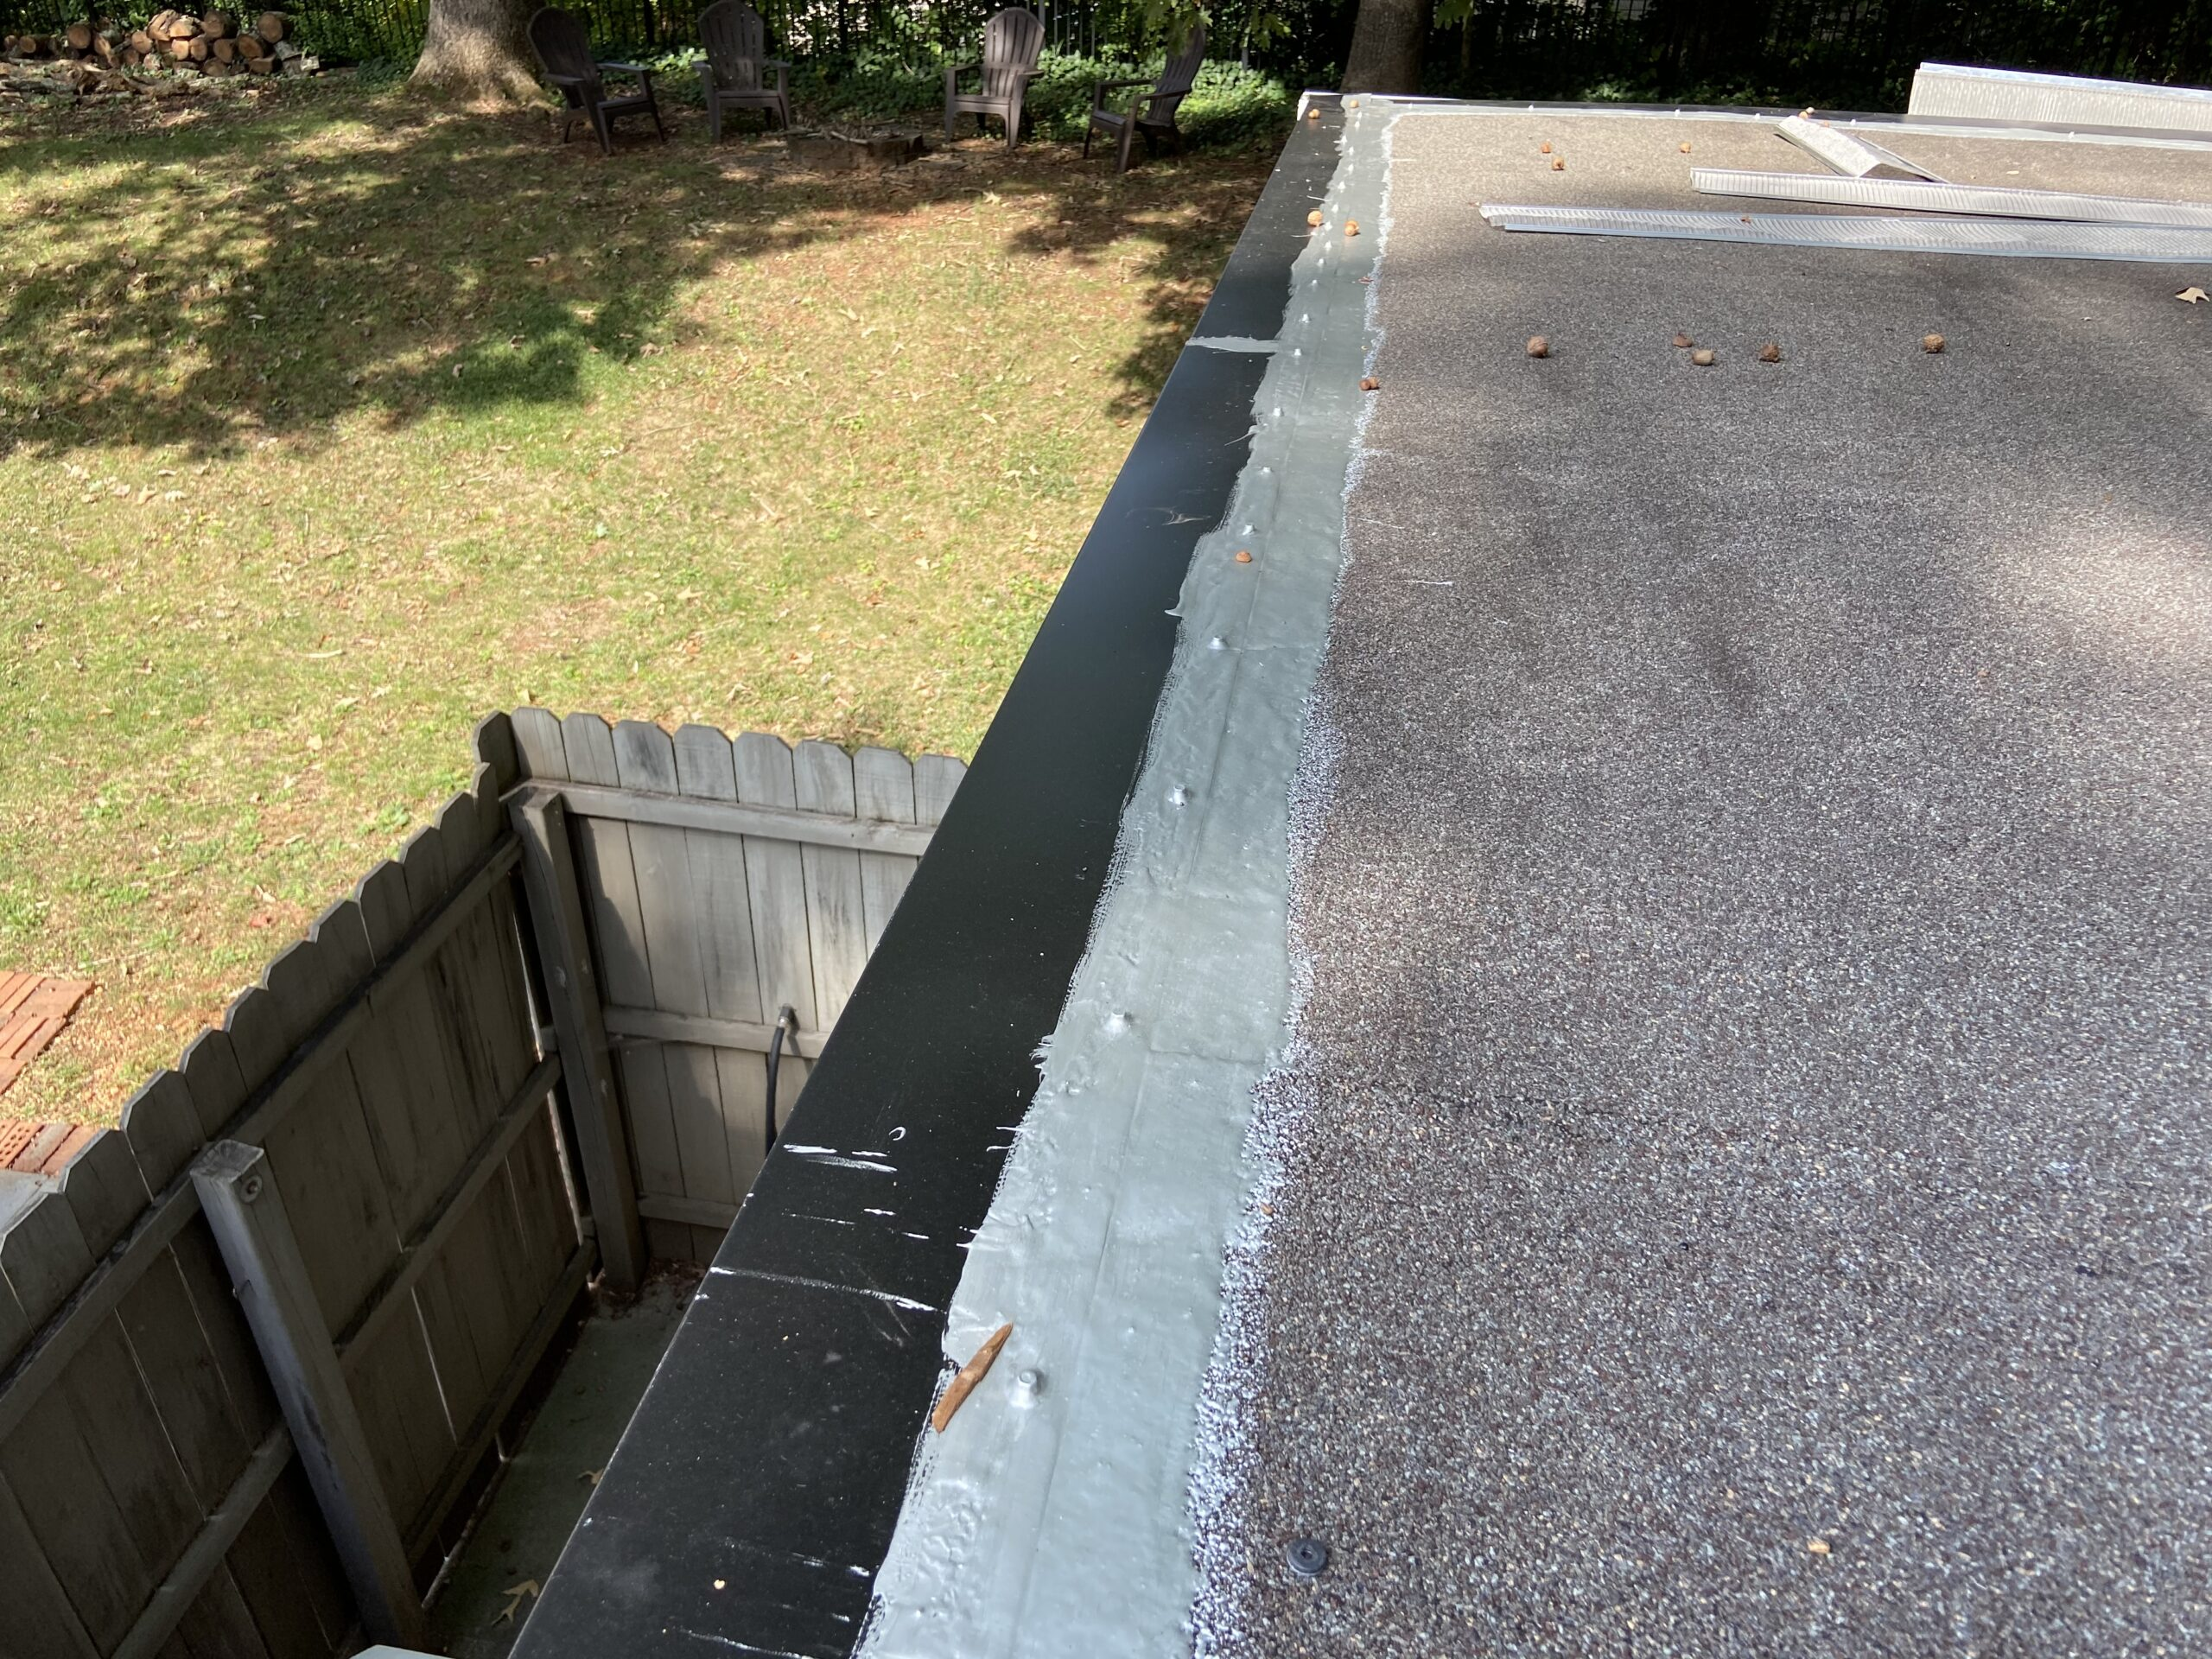 This is a commercial roof coating going over a commercial roof